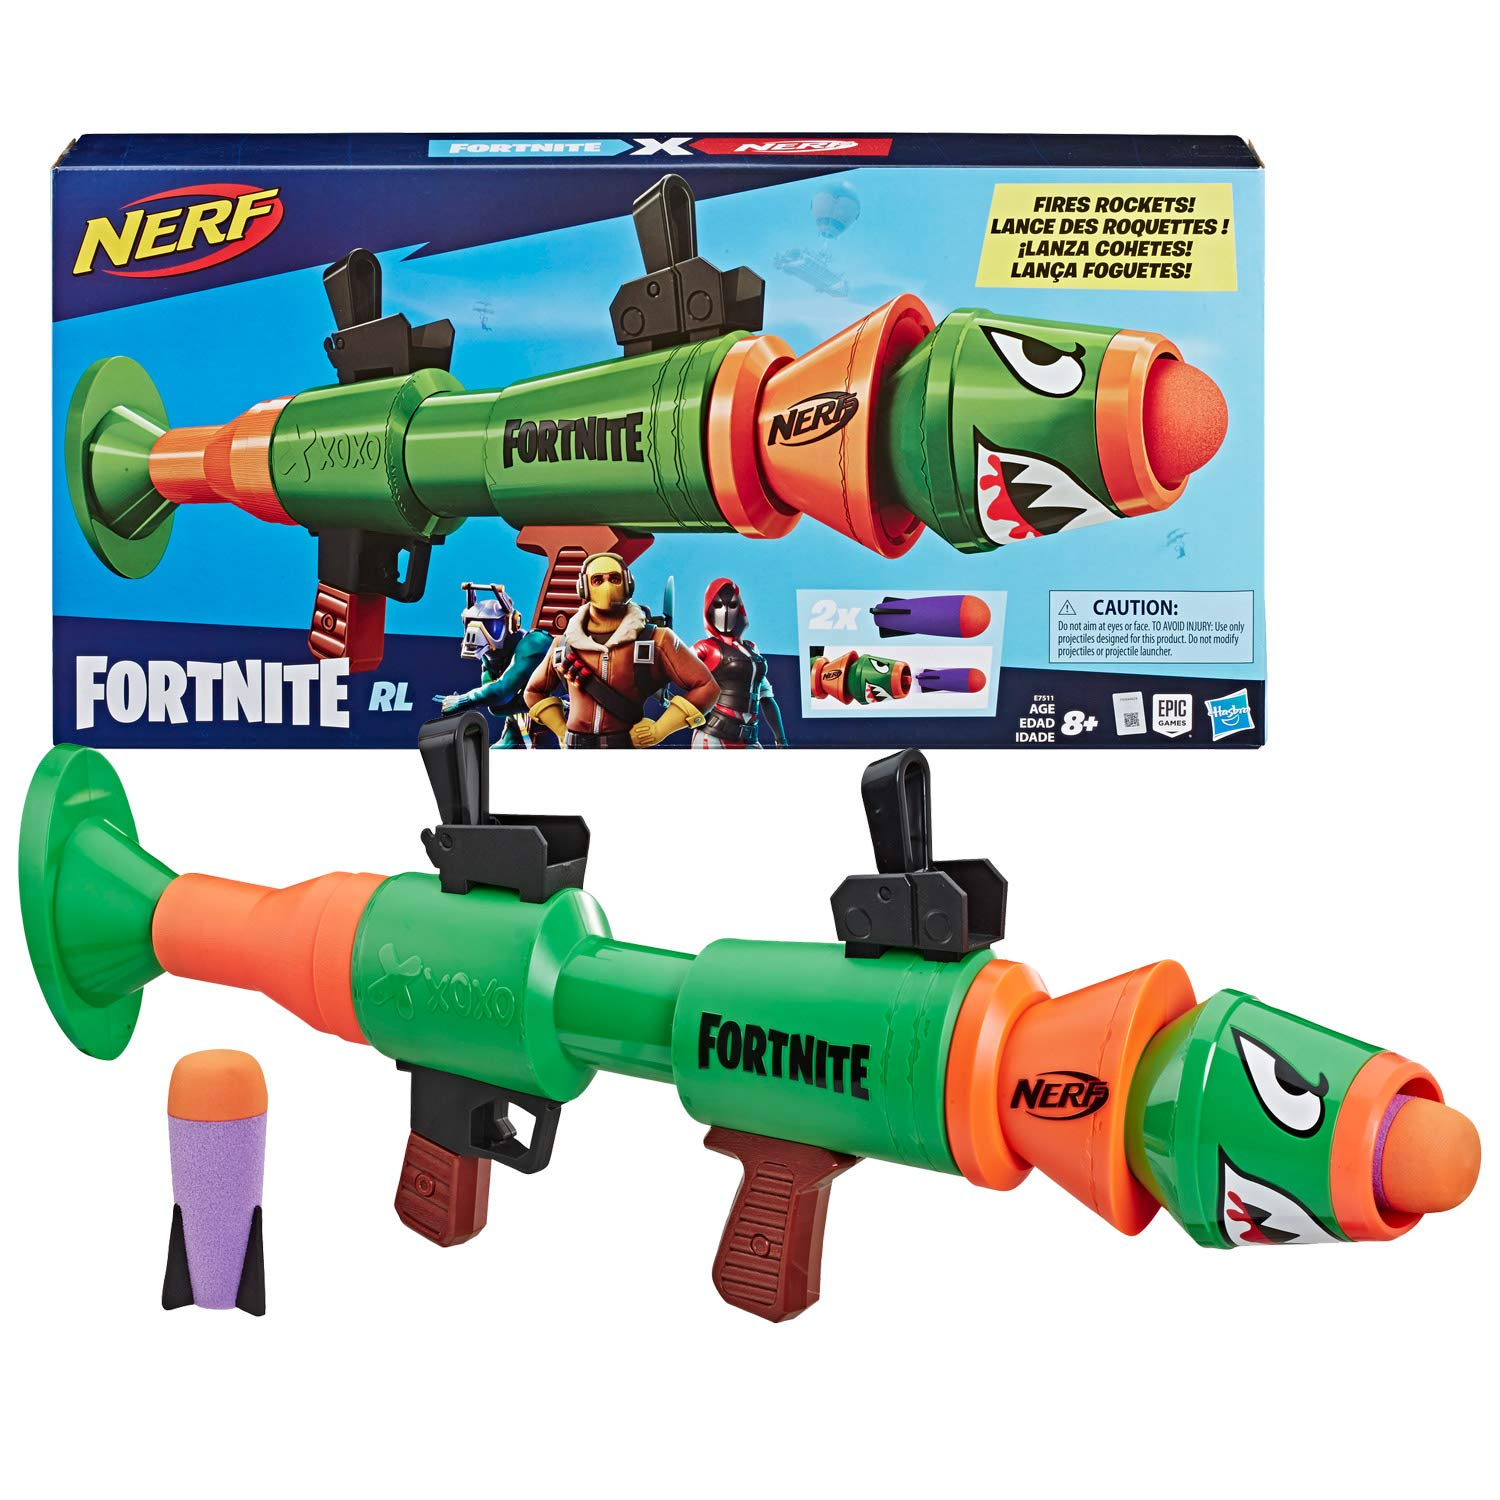 To buy NERF Fortnite RL Rocket-firing blaster